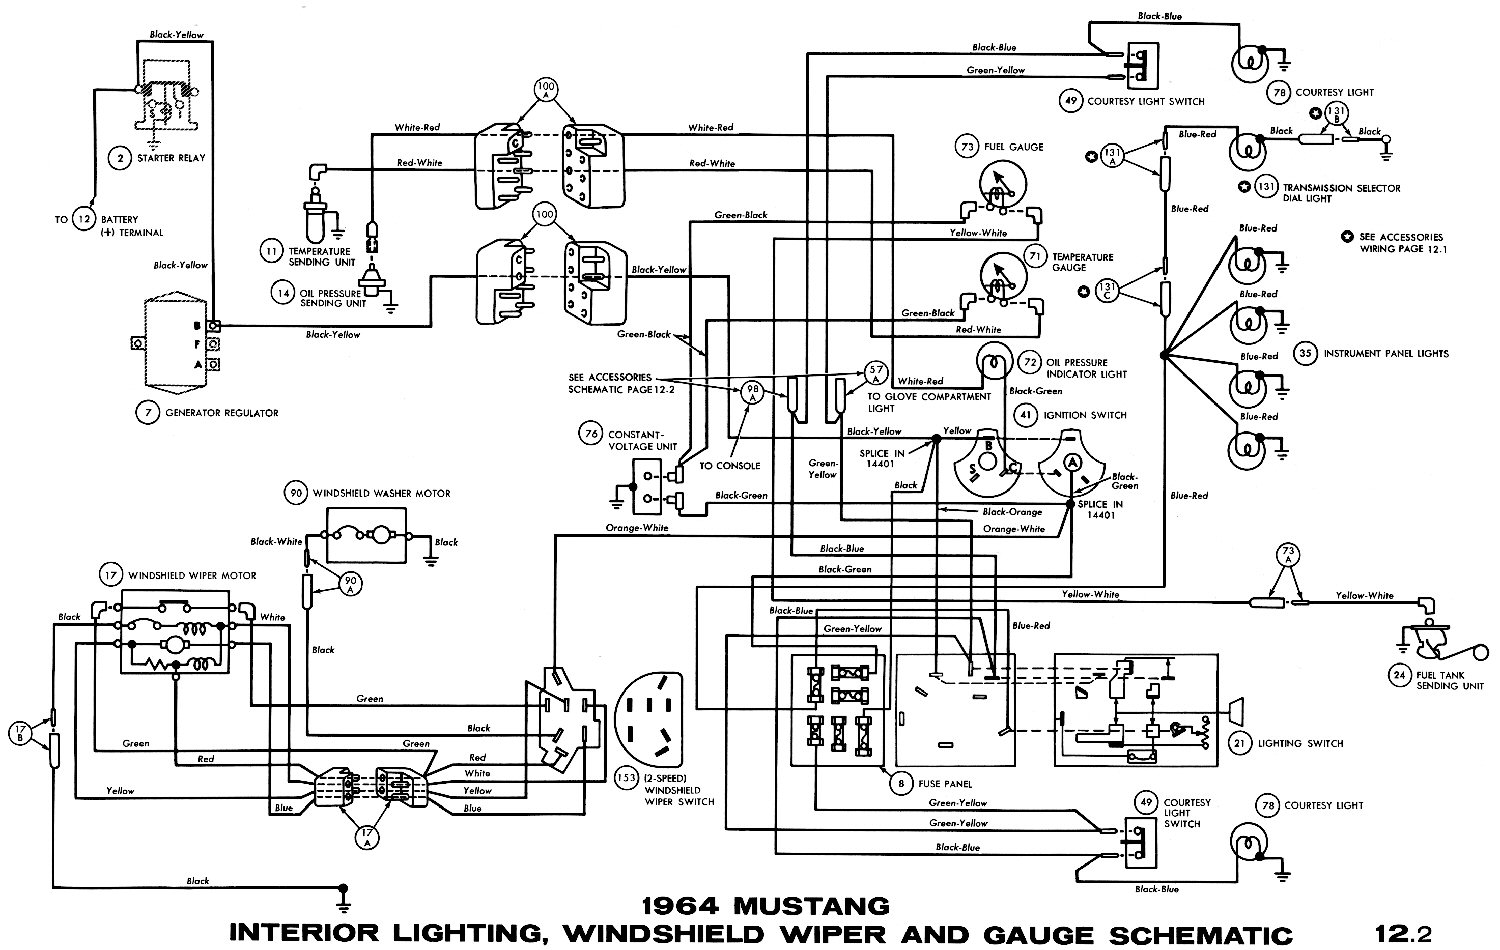 1964k 1964 mustang wiring diagrams average joe restoration on 2015 mustang guage wiring diagram